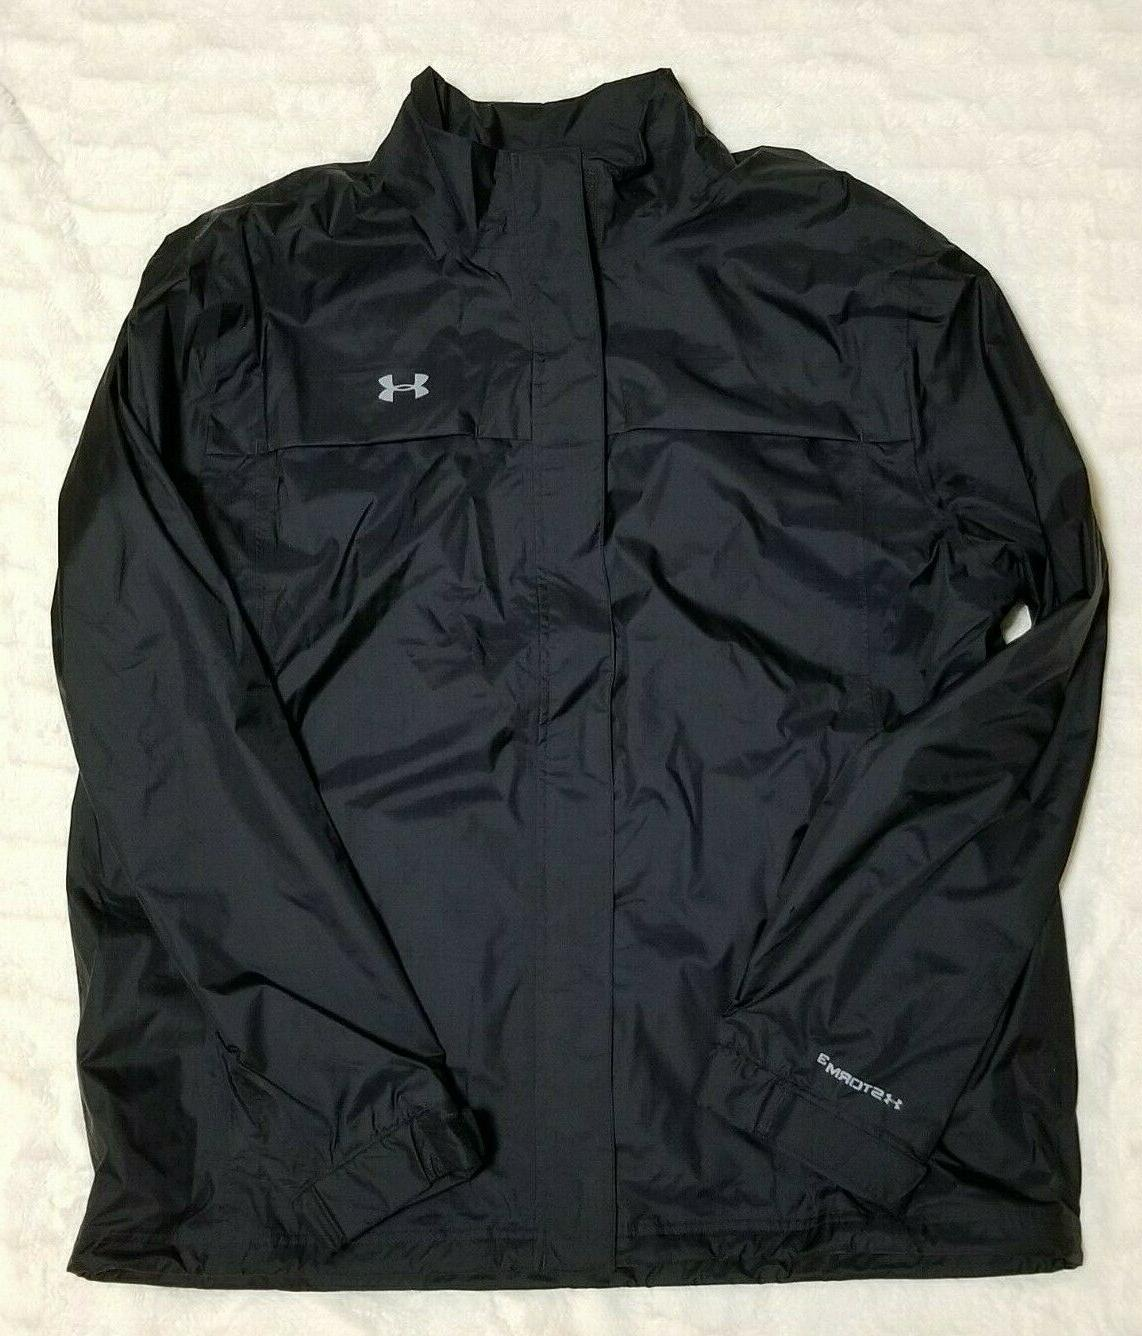 Under Storm3 Golf Rain Suit Black XXL With $169.99